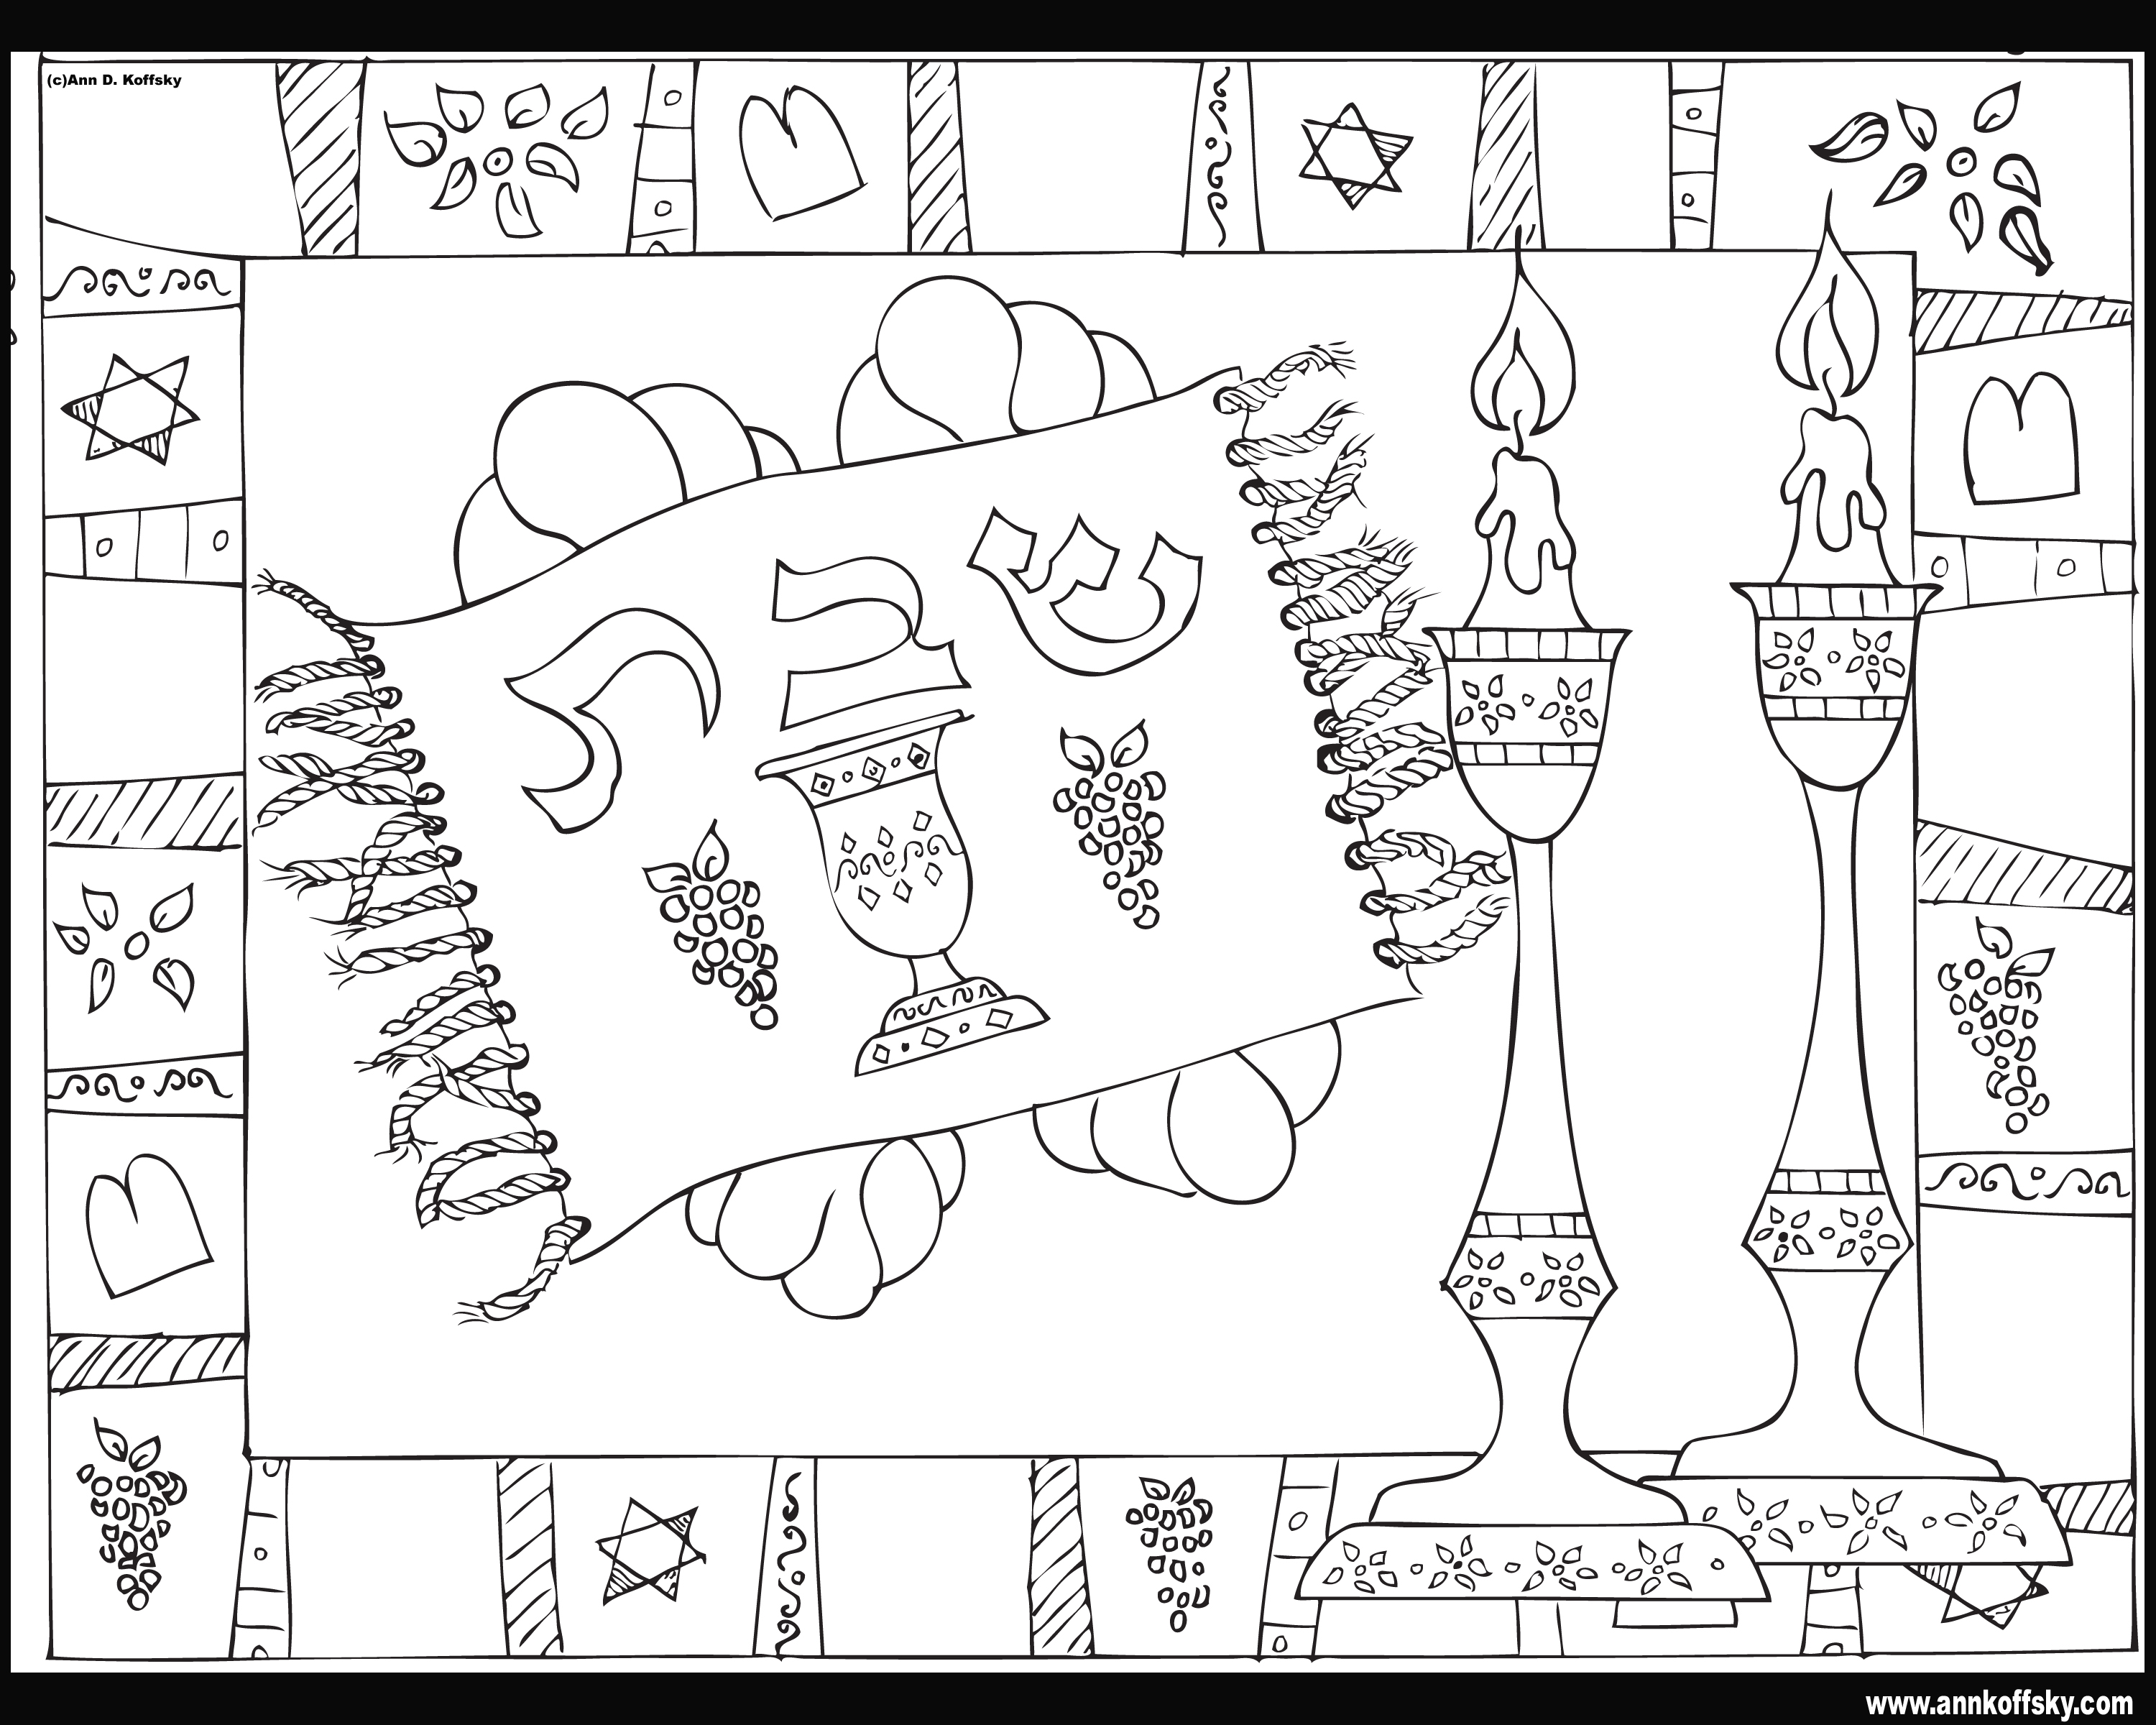 shabbat coloring pages Shabbat Coloring Page shabbat coloring pages